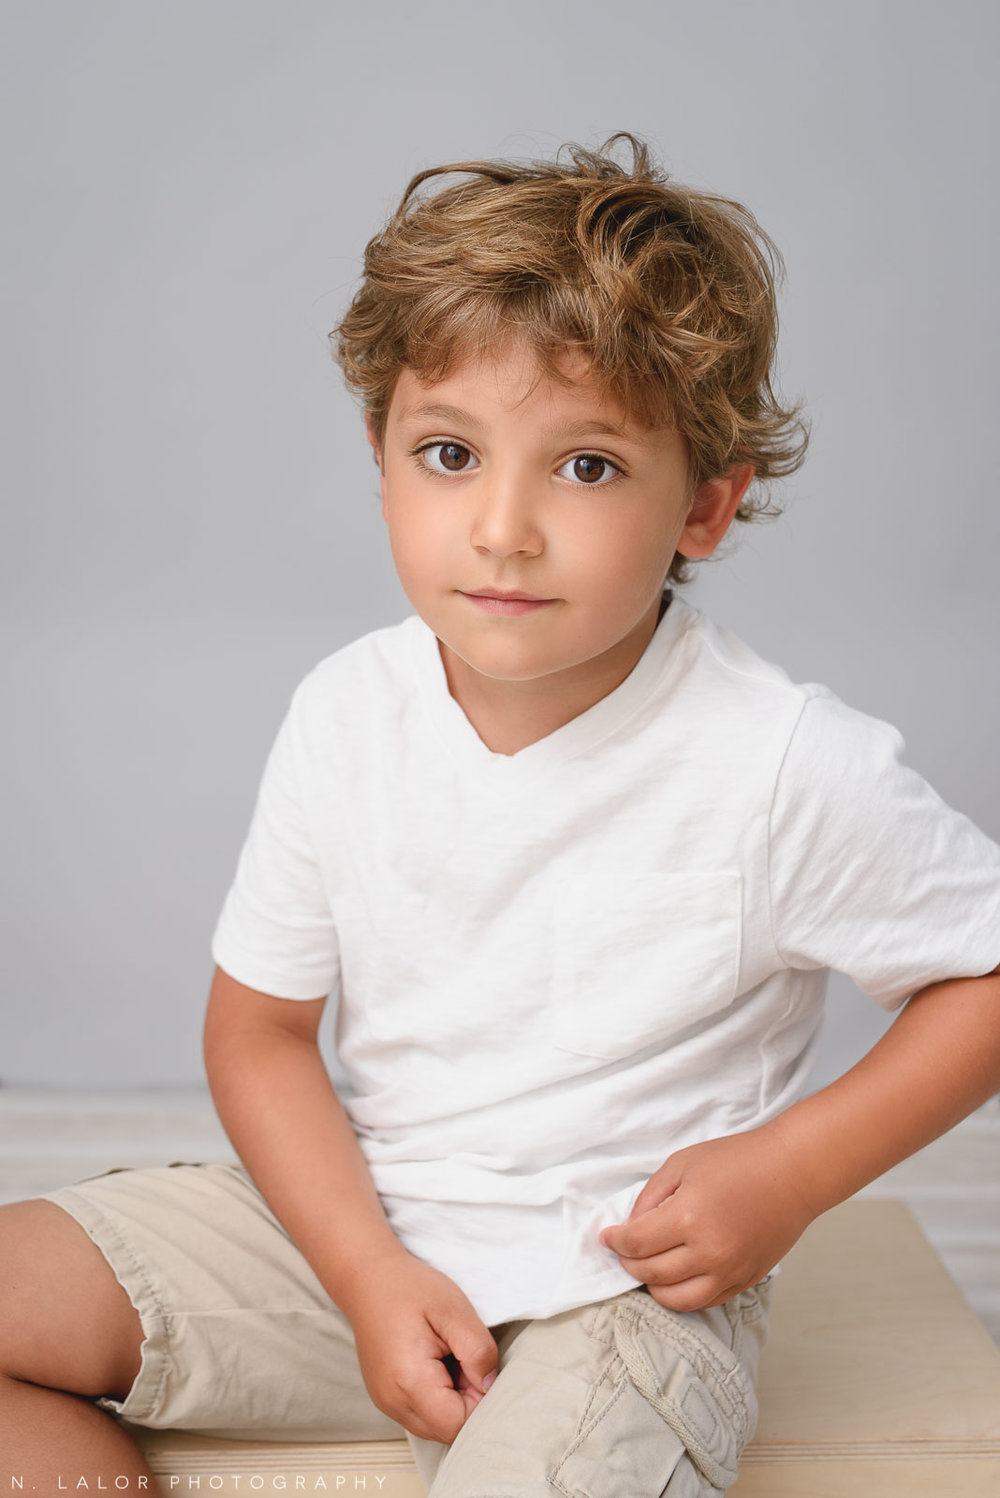 The thoughtful one. Family photo session by N. Lalor Photography in Greenwich, CT.